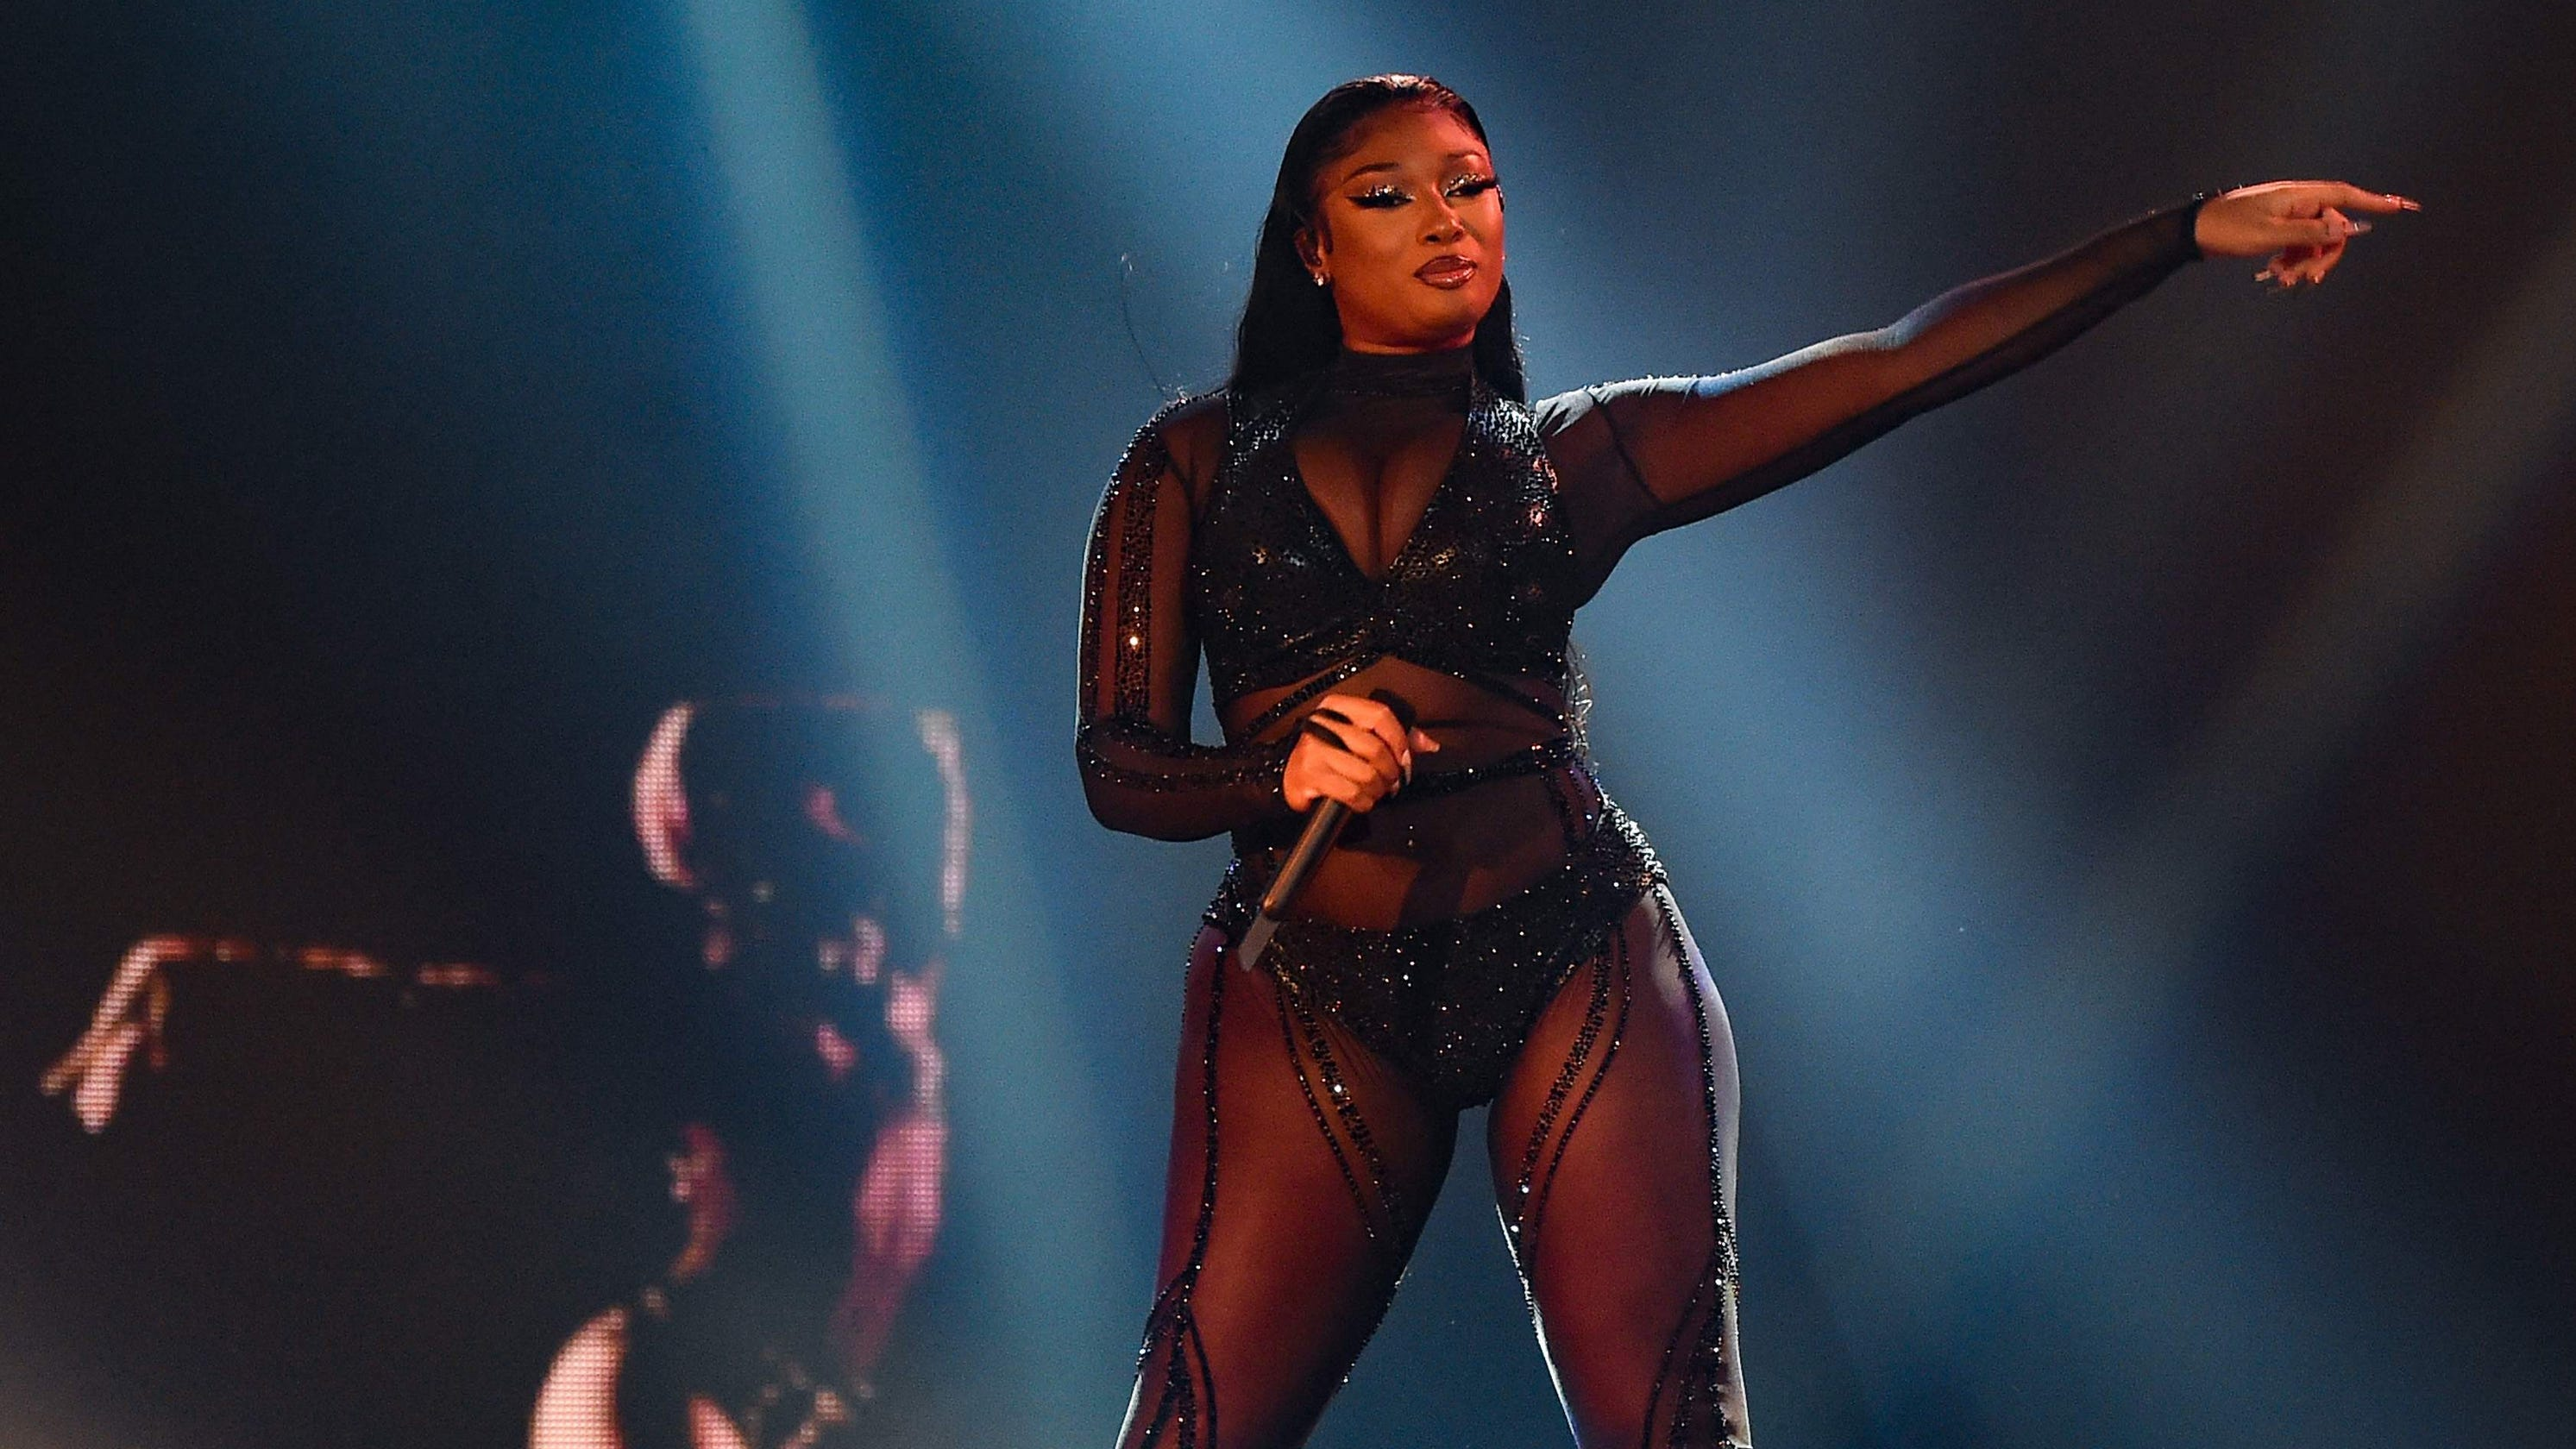 'I really like him': Megan Thee Stallion confirms she's dating rapper Pardison Fontaine - USA TODAY